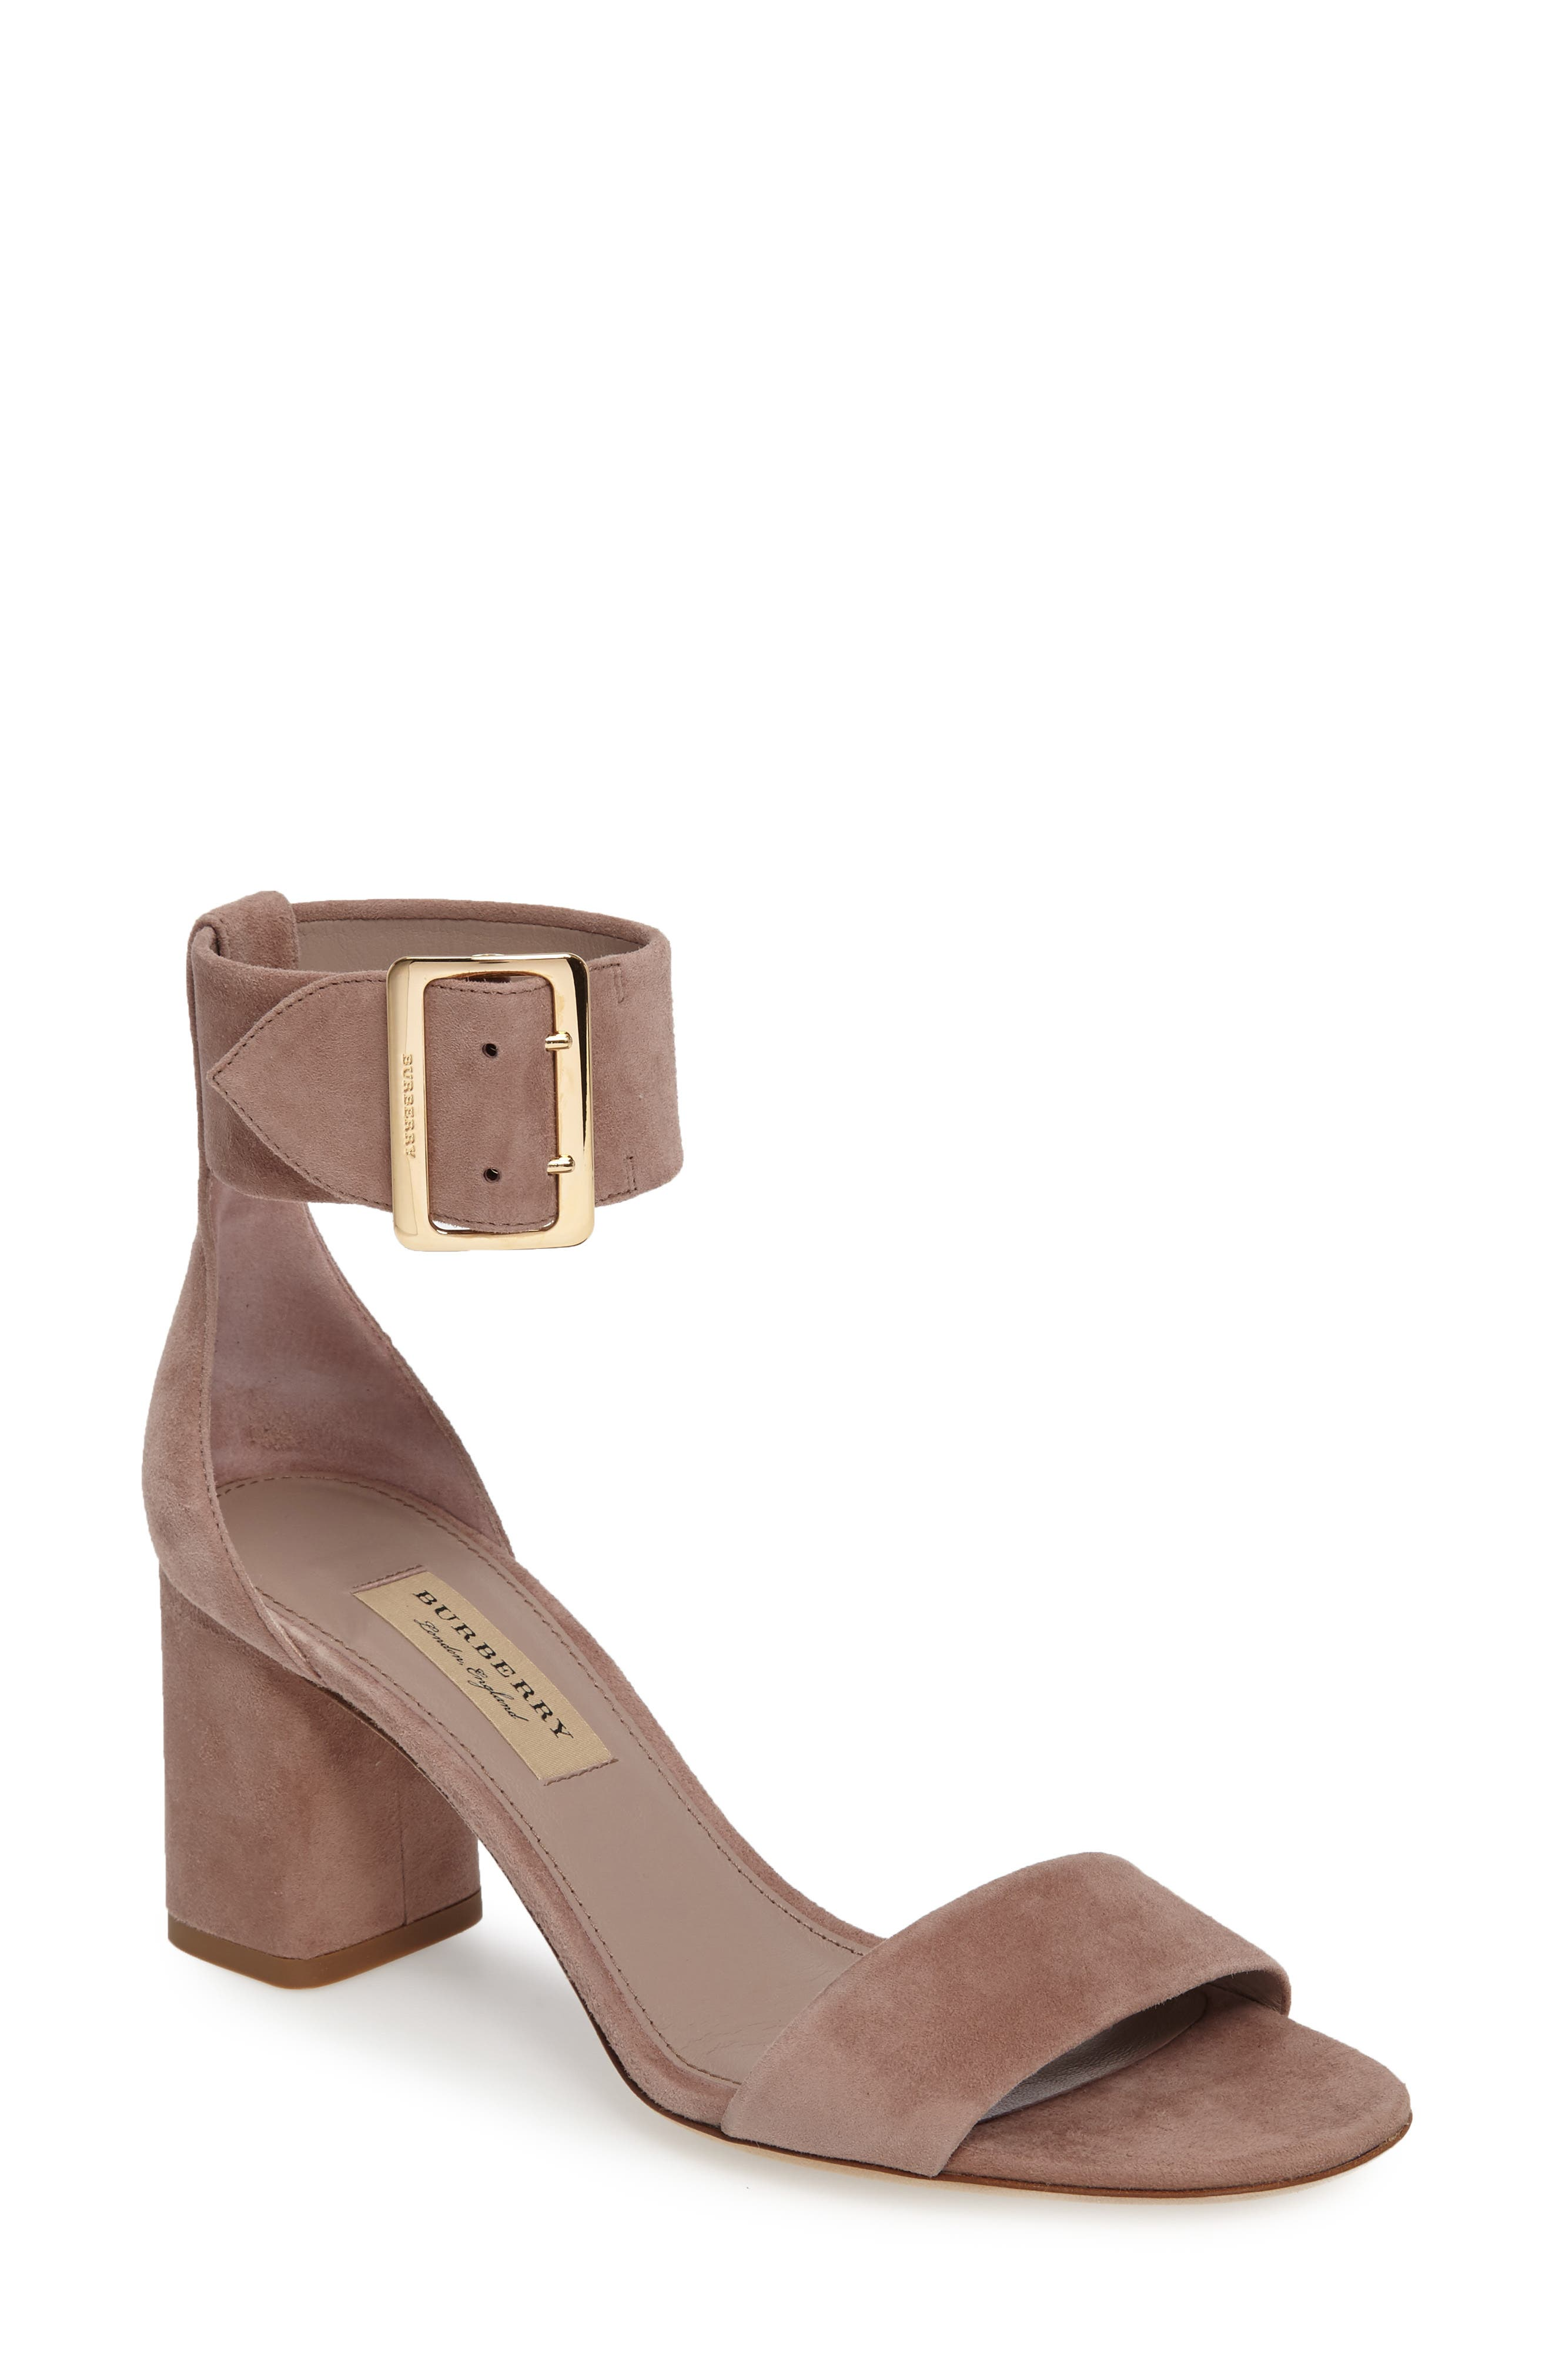 Alternate Image 1 Selected - Burberry Trench Buckle Sandal (Women)